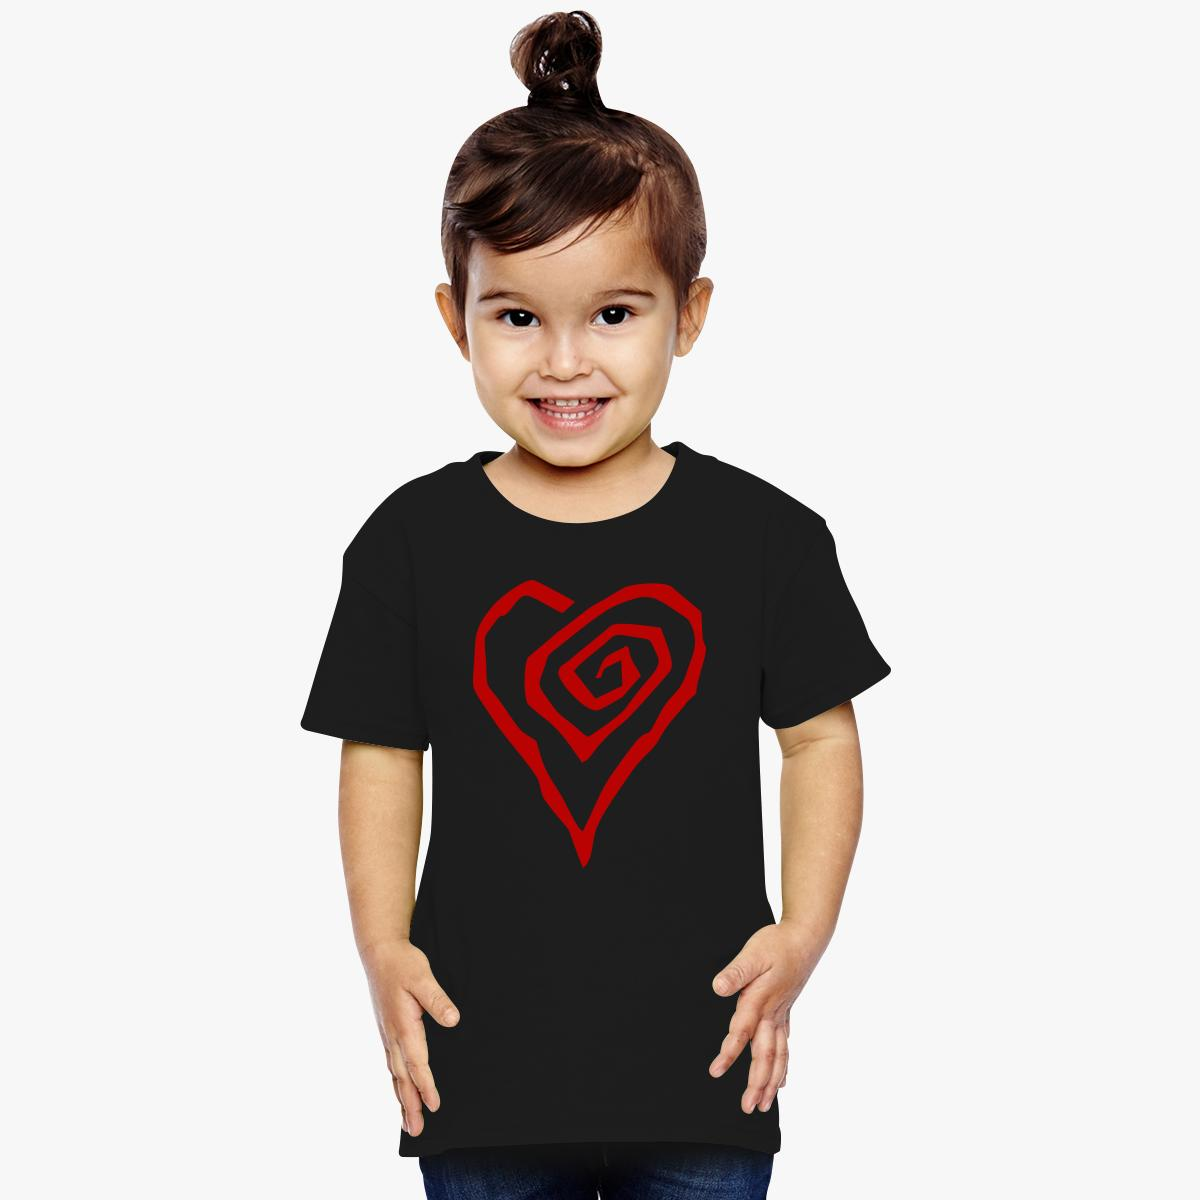 Marilyn manson symbols toddler t shirt customon marilyn manson symbols toddler t shirt buycottarizona Images